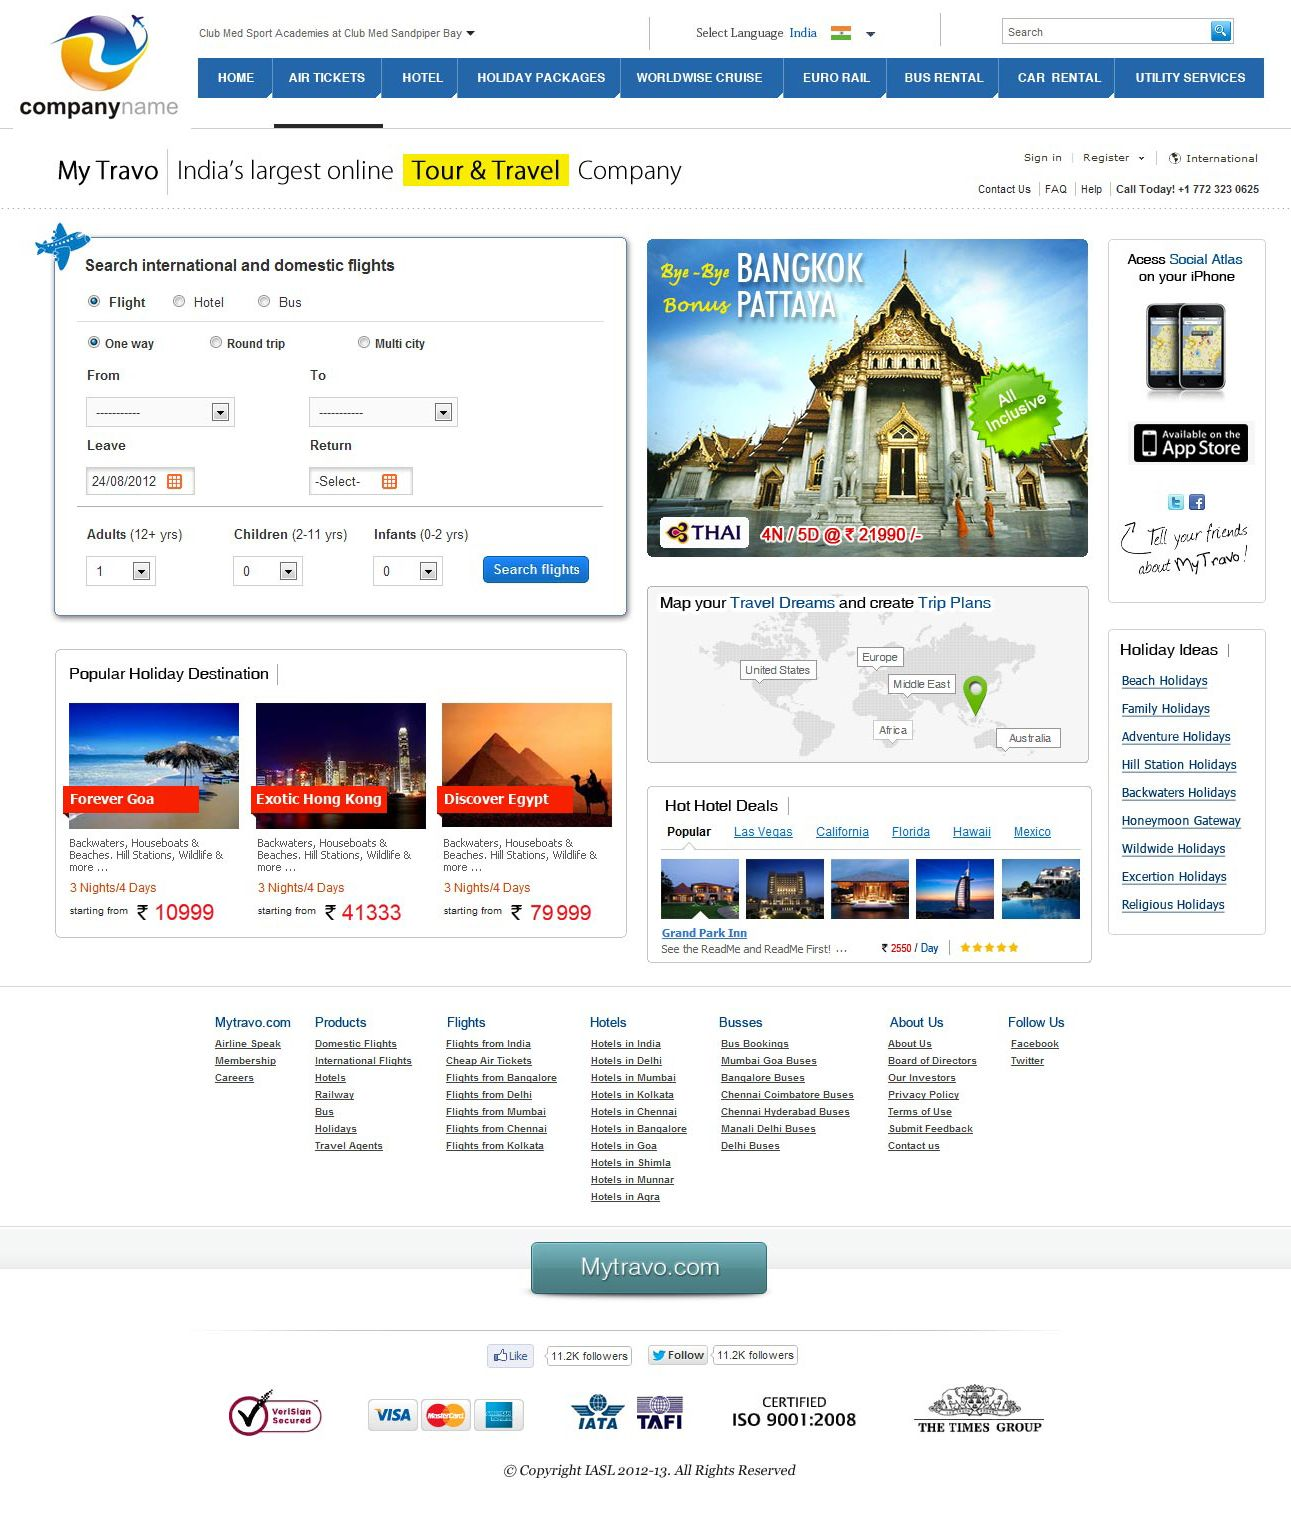 Get The Best Seo Training In Kolkata By Froggyleap And Build Your Career Click Www Froggyleap Com Photoshop Training Web Design Training Photoshop Course